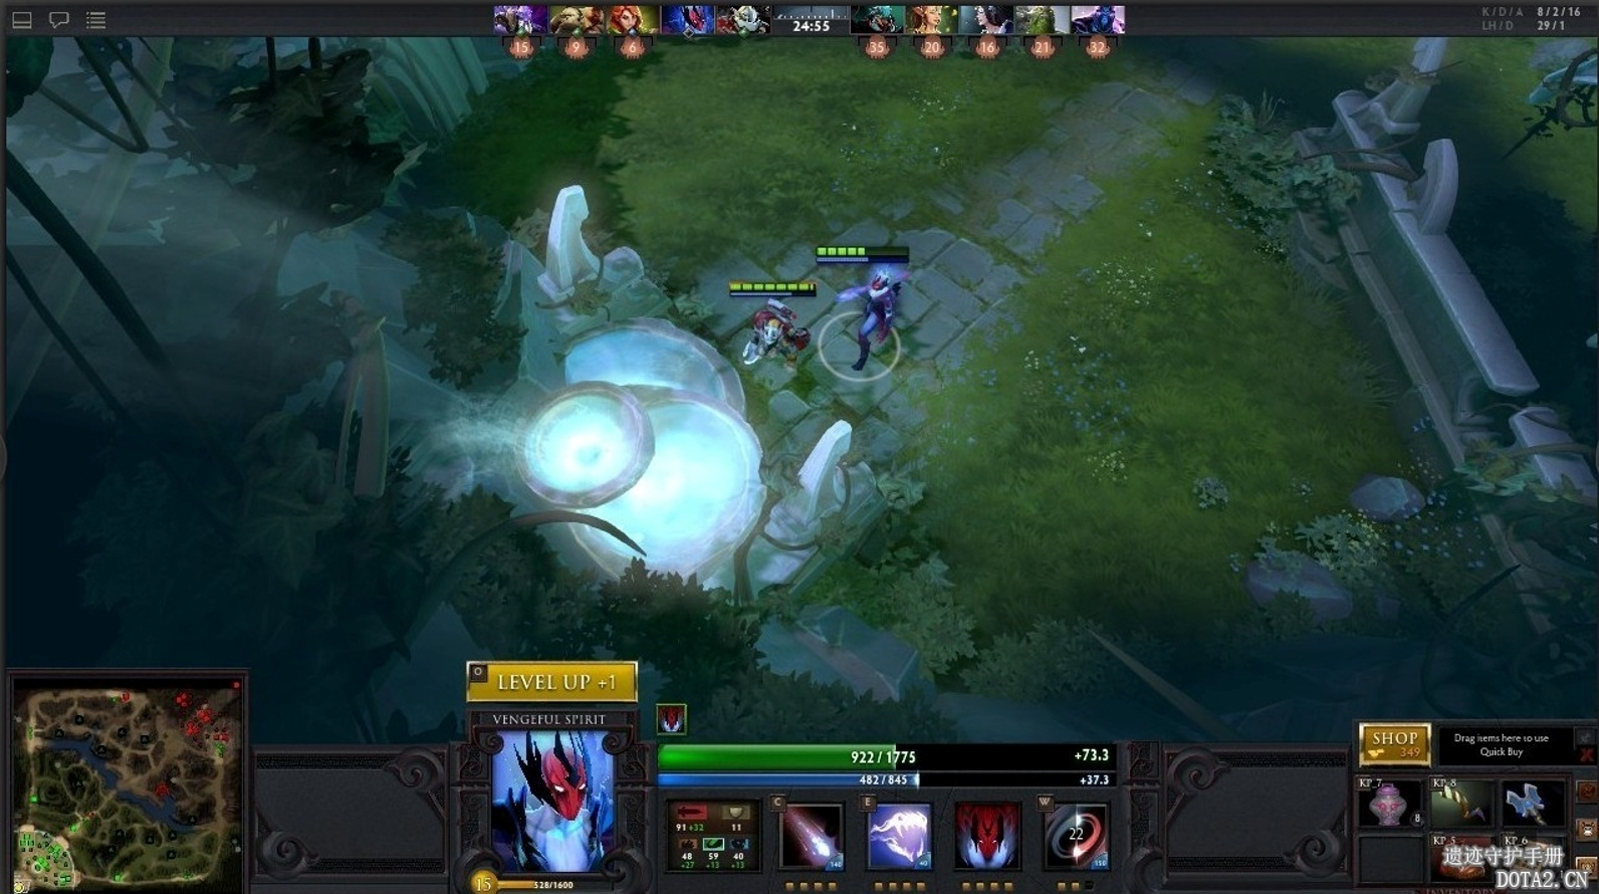 Dota2sexvideos exploited video